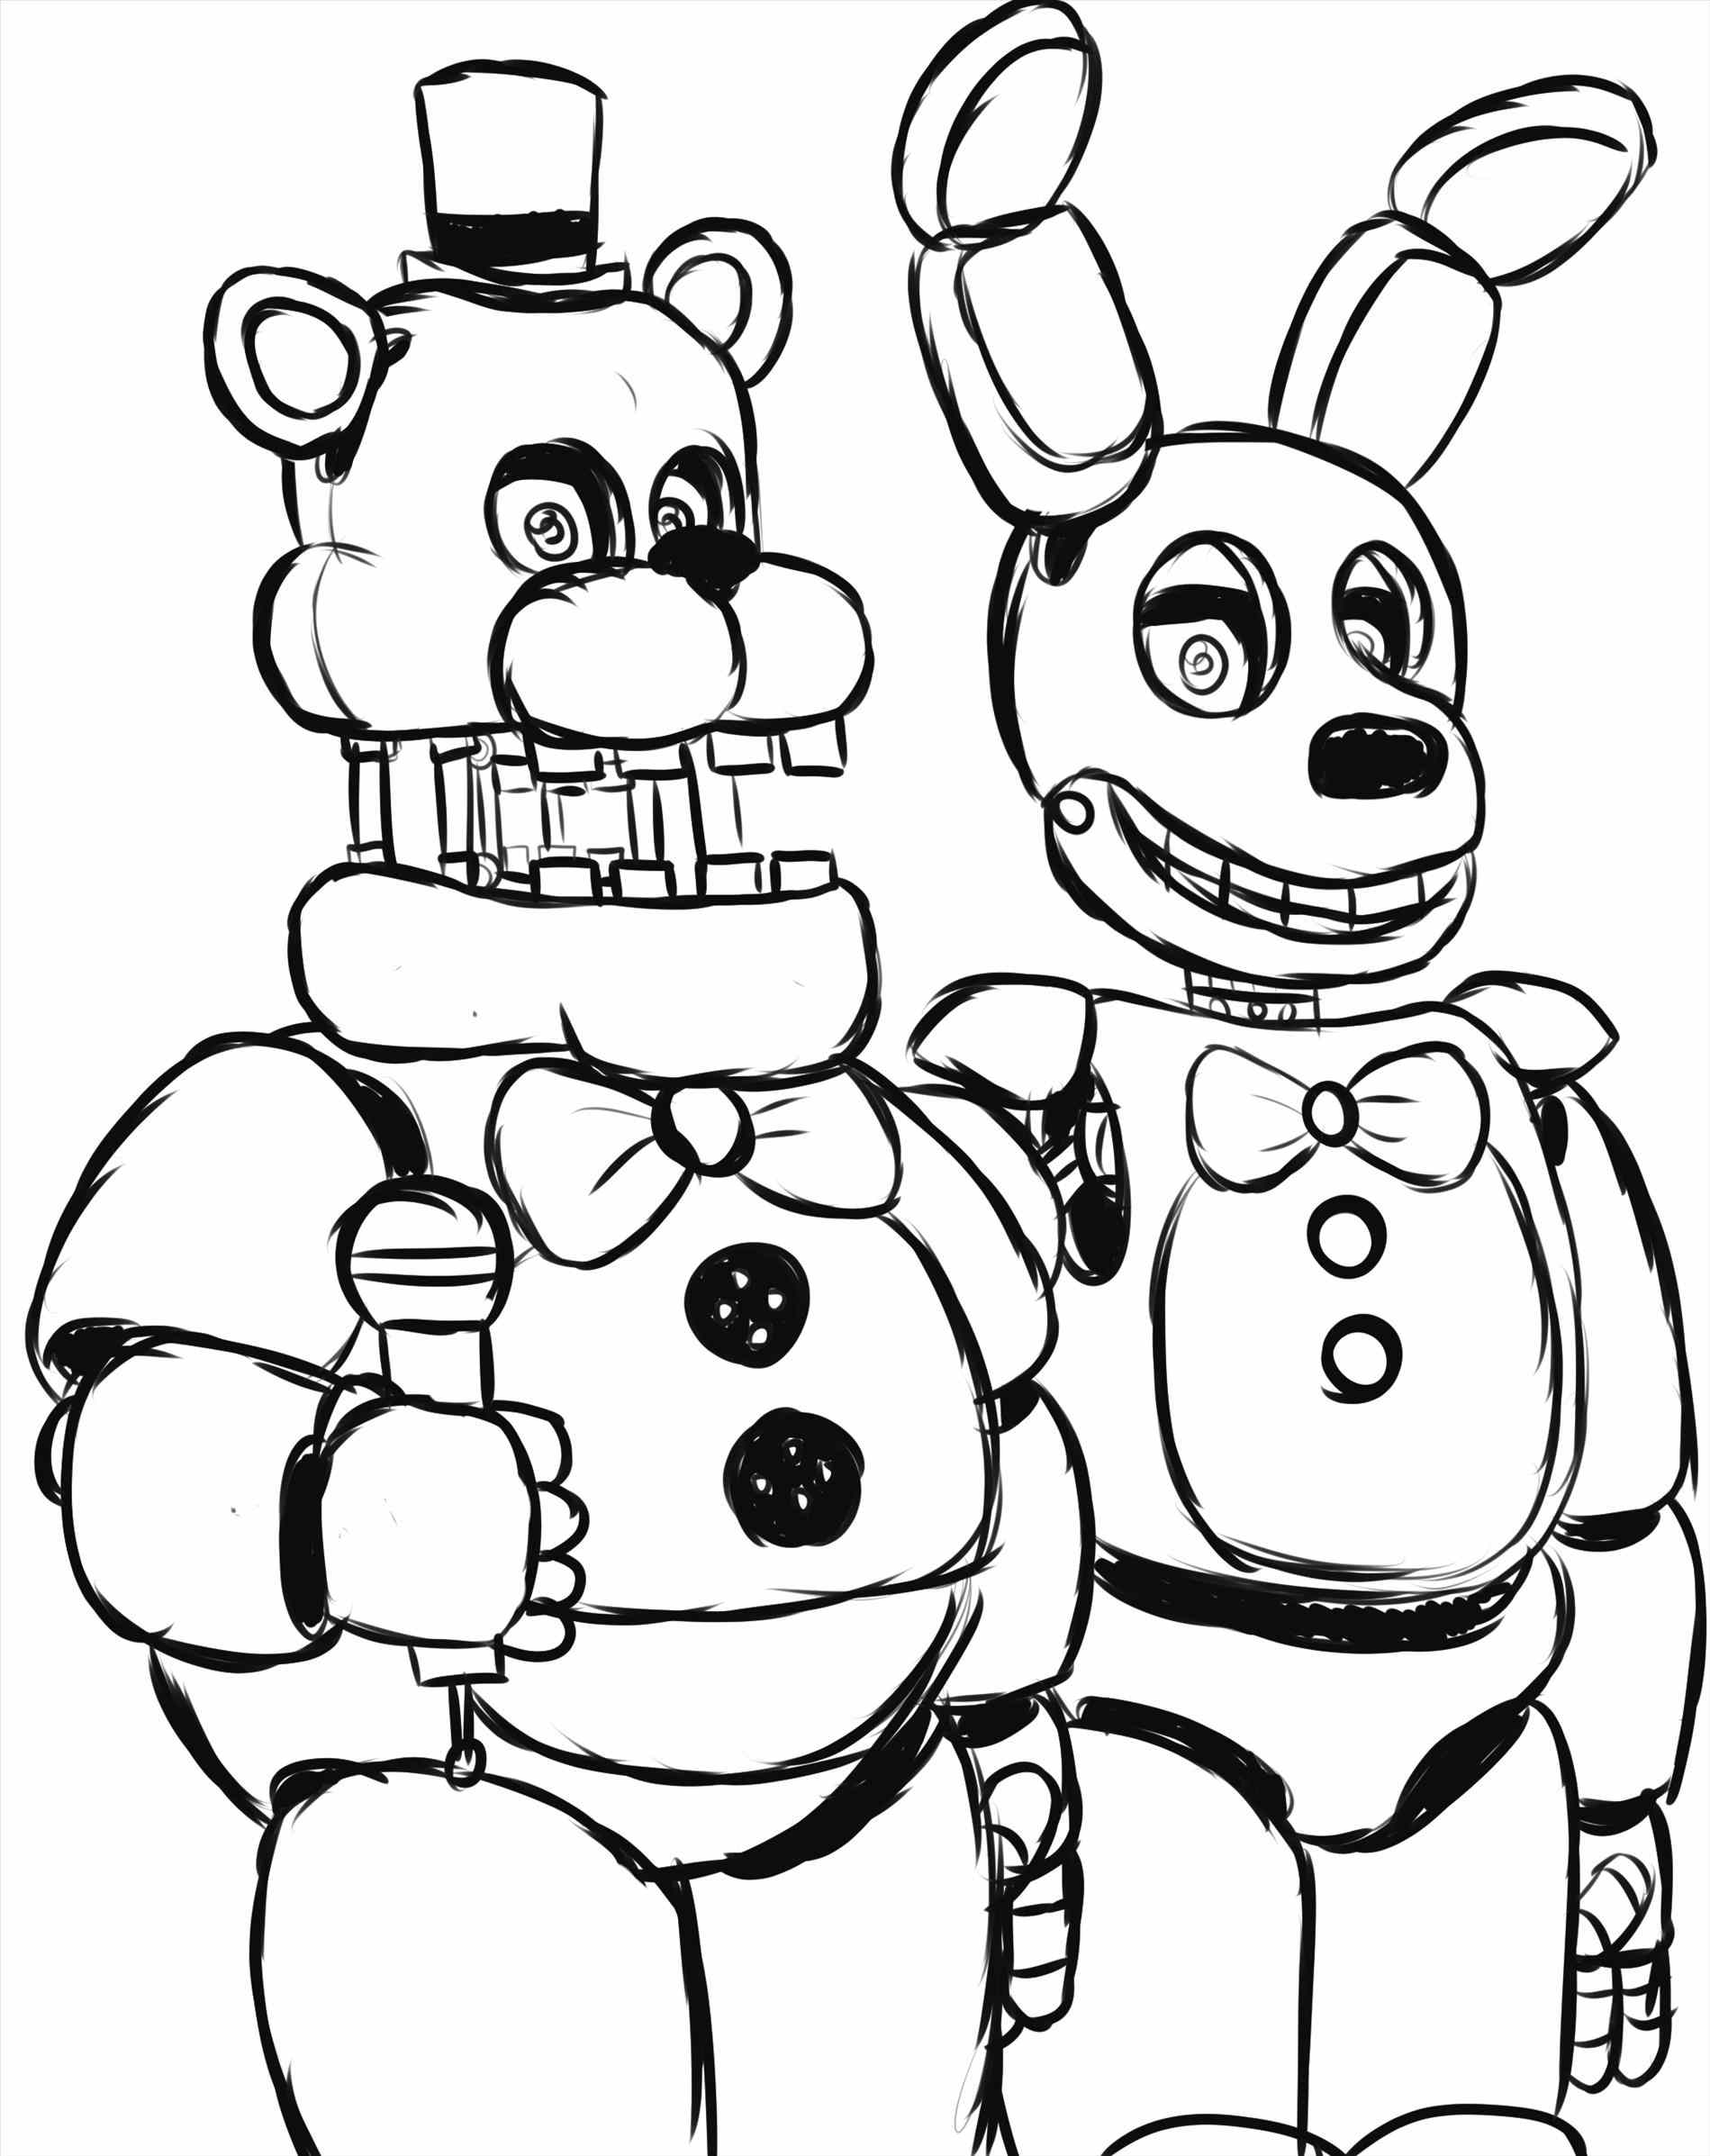 Fnaf Foxy Coloring Pages At Getdrawings Com Free For Personal Use